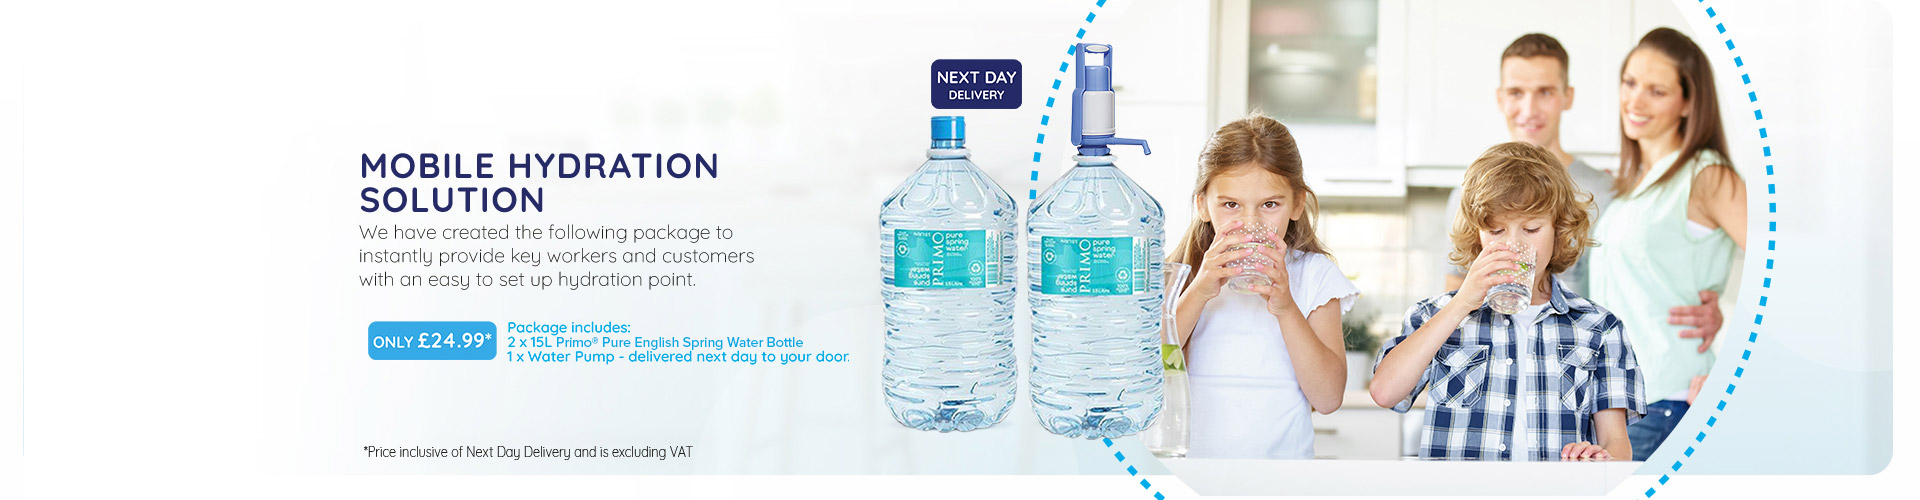 Mobile Hydration Solution Primo